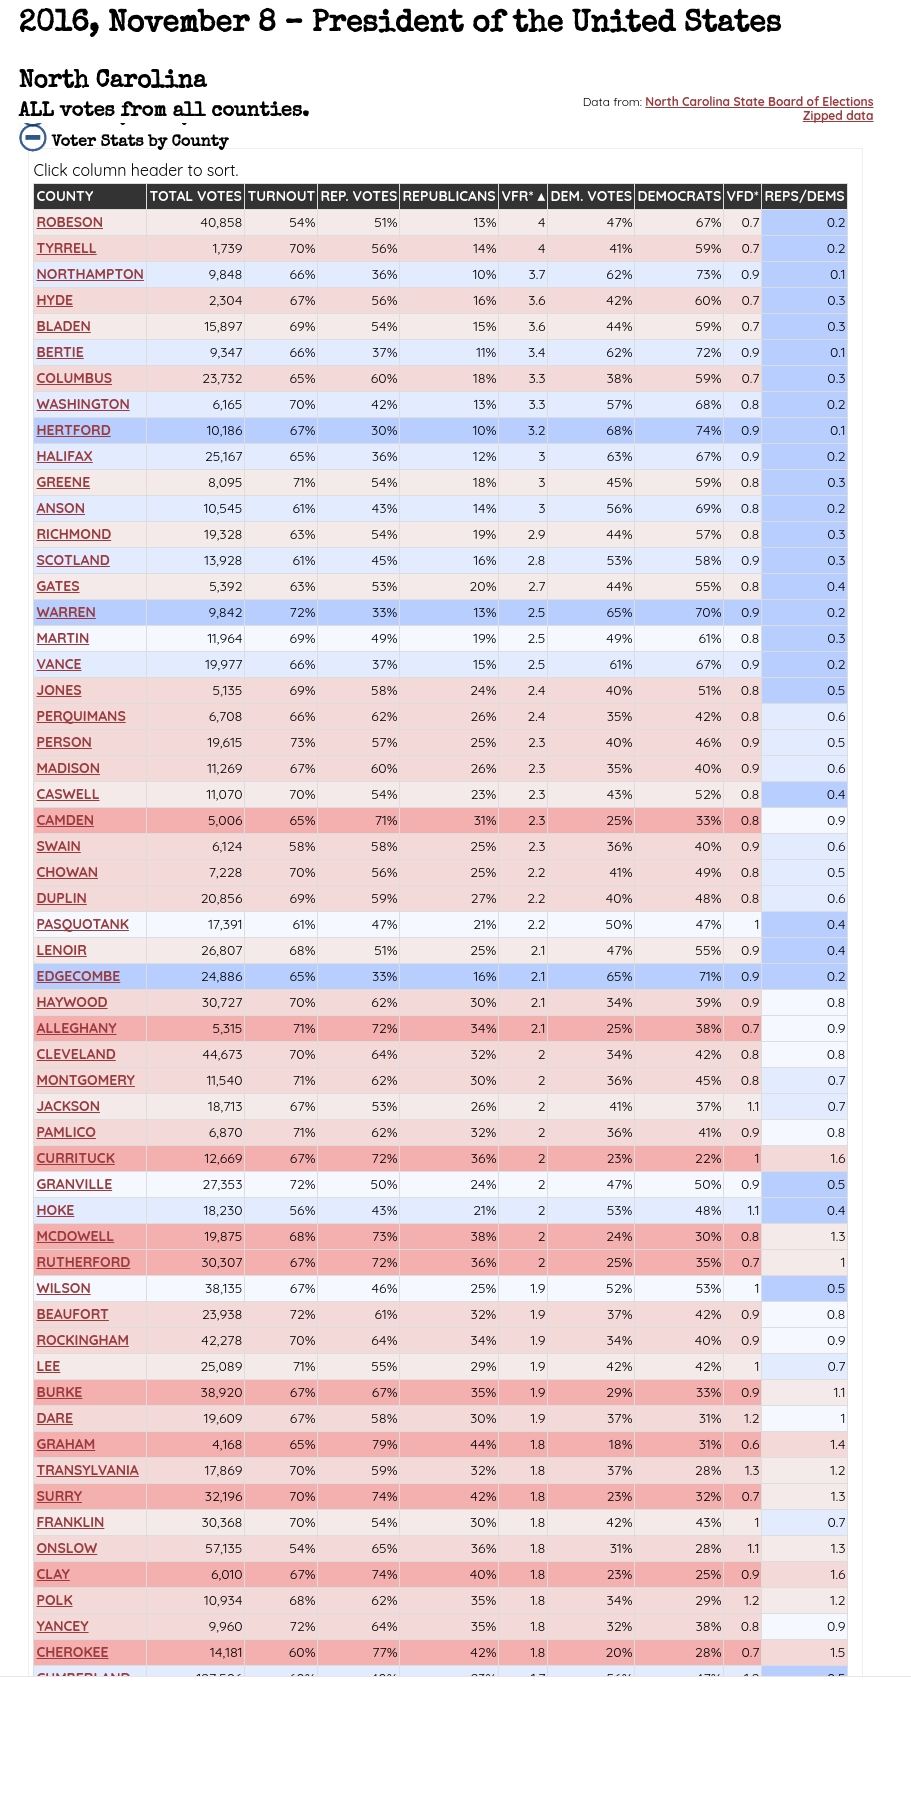 Voting Choice vs. Registrations, by County